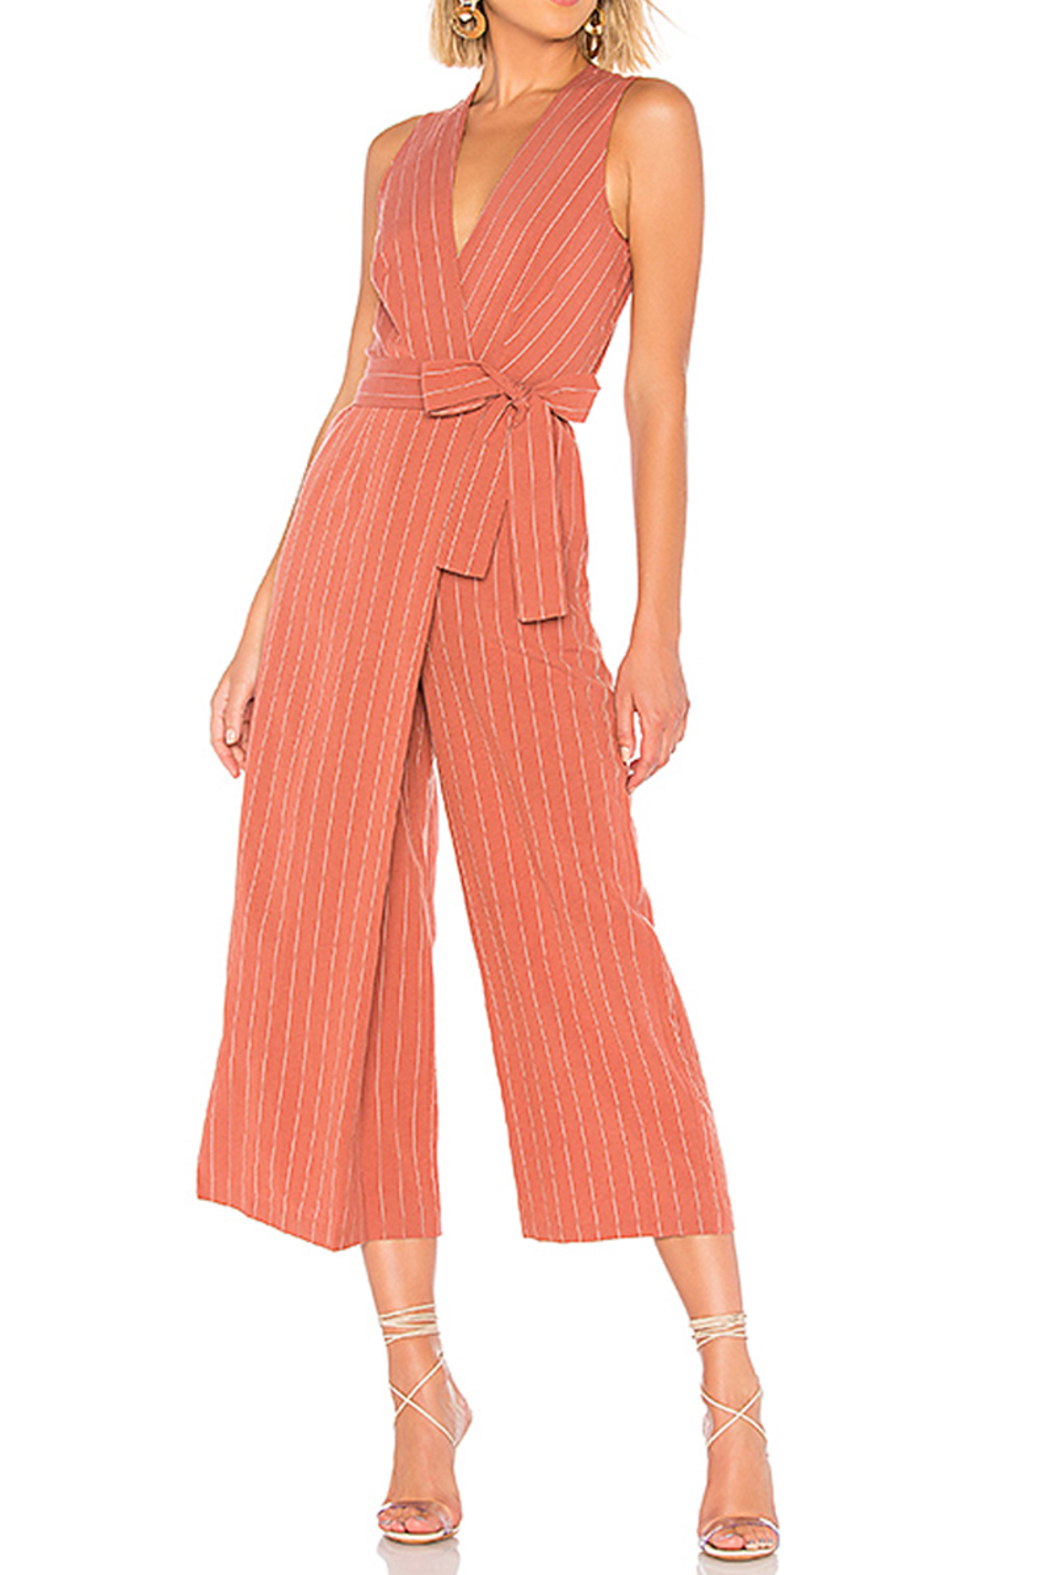 bb0f77a992b2 Saylor Emery Jumpsuit from Marina by y i clothing boutique — Shoptiques